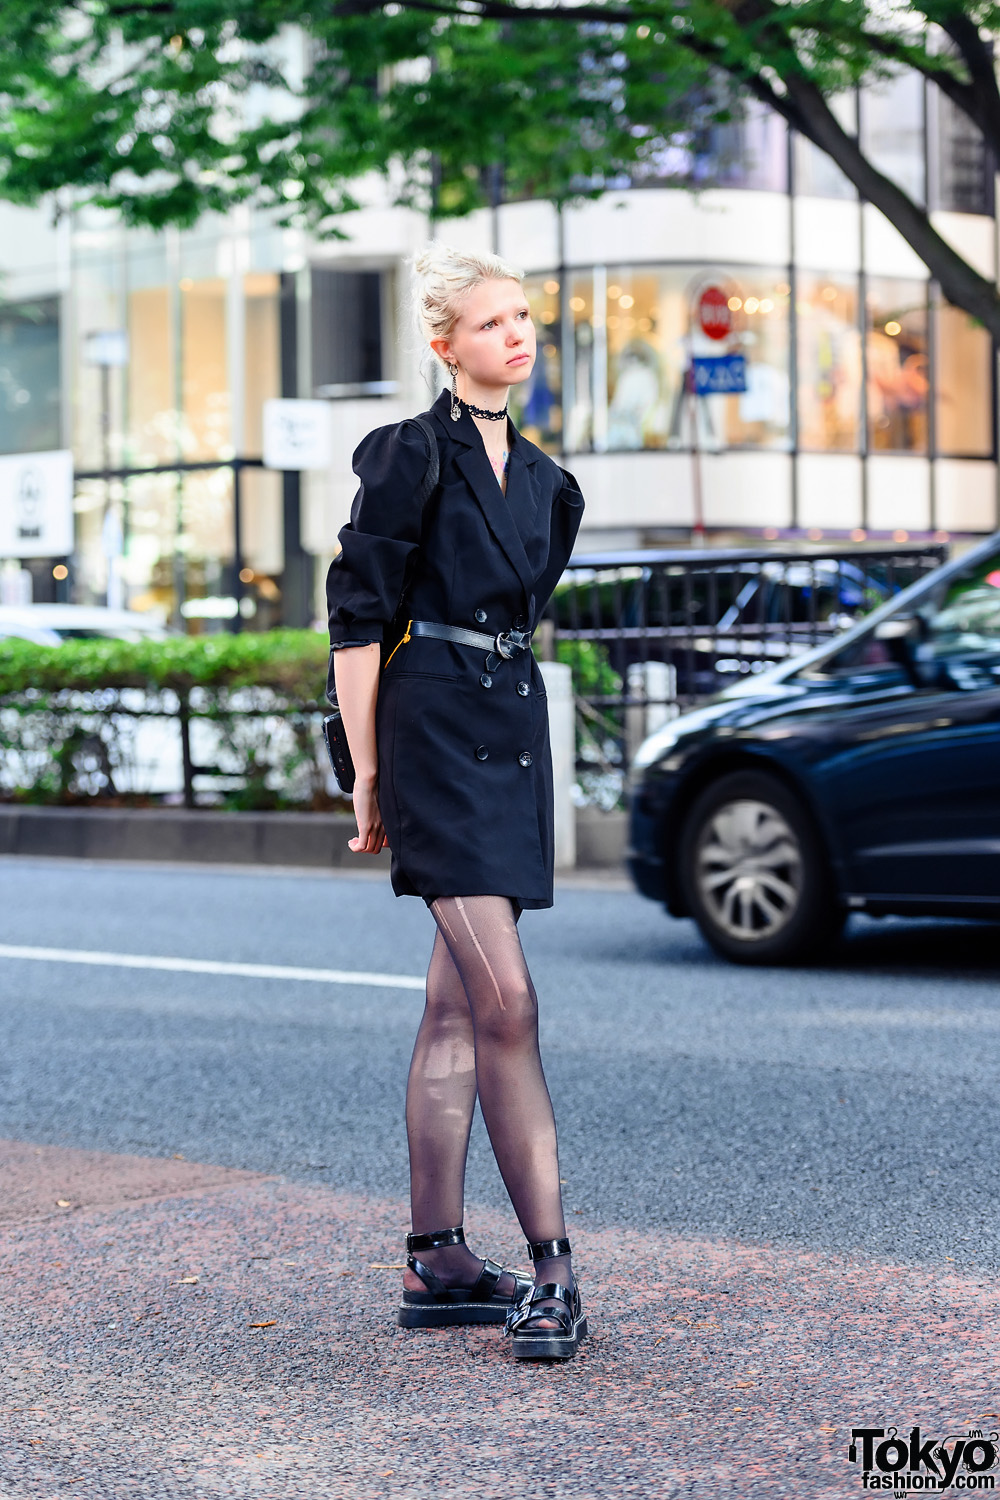 Tokyo Fashion Model's All Black Street Style w/ Tattoos, Double-Breasted Coat & Buckle Sandals